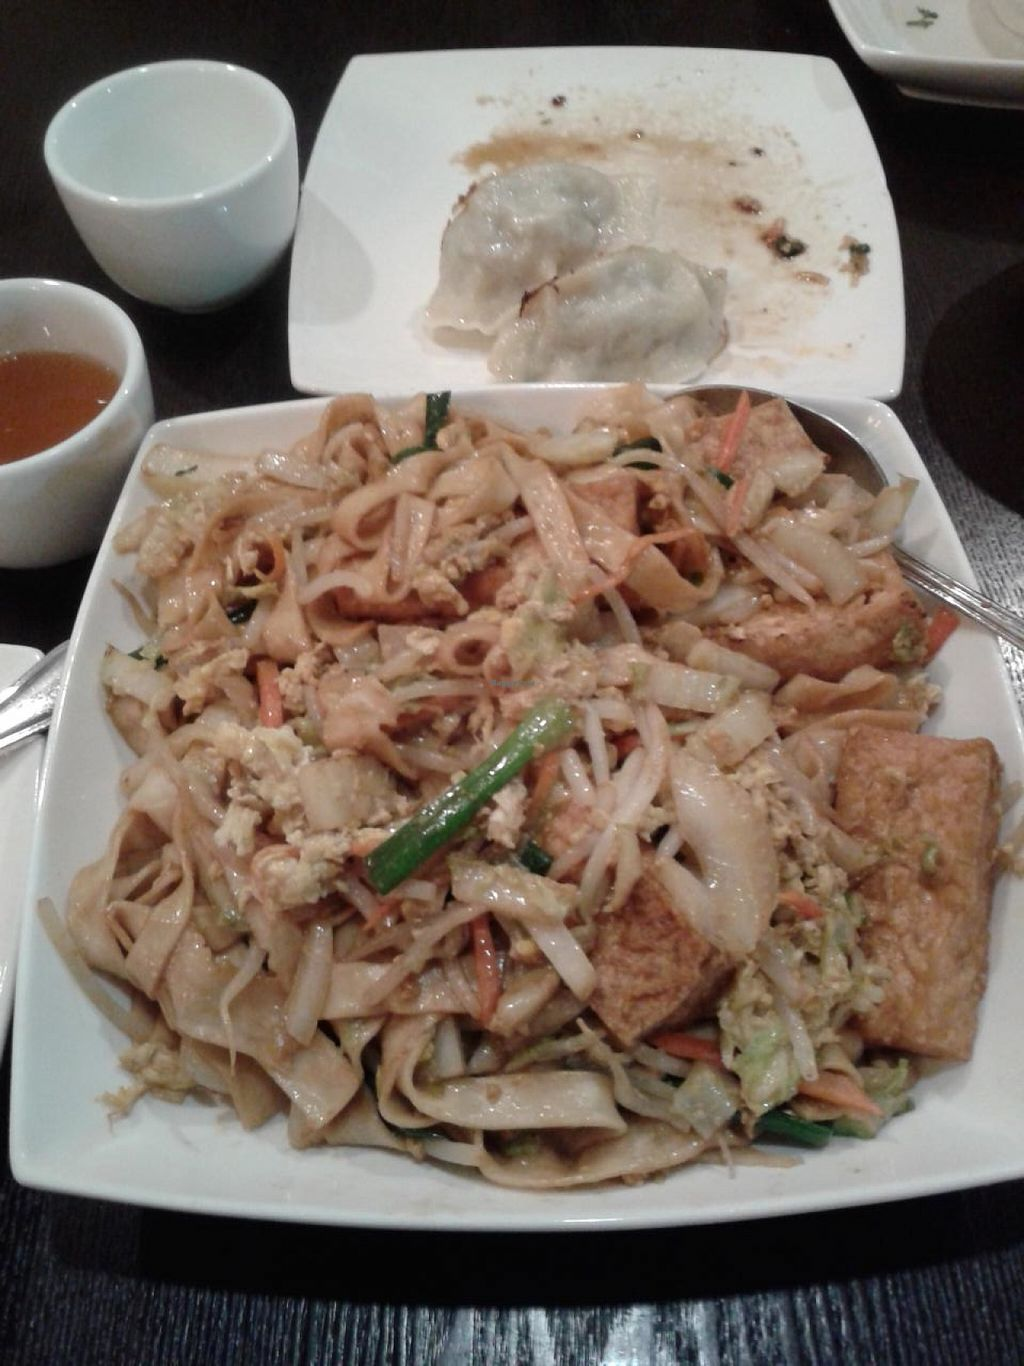 """Photo of Nomad Asian Bistro  by <a href=""""/members/profile/chobesoy"""">chobesoy</a> <br/>hand pulled fresh noodles requested with tofu <br/> January 23, 2014  - <a href='/contact/abuse/image/44101/186952'>Report</a>"""